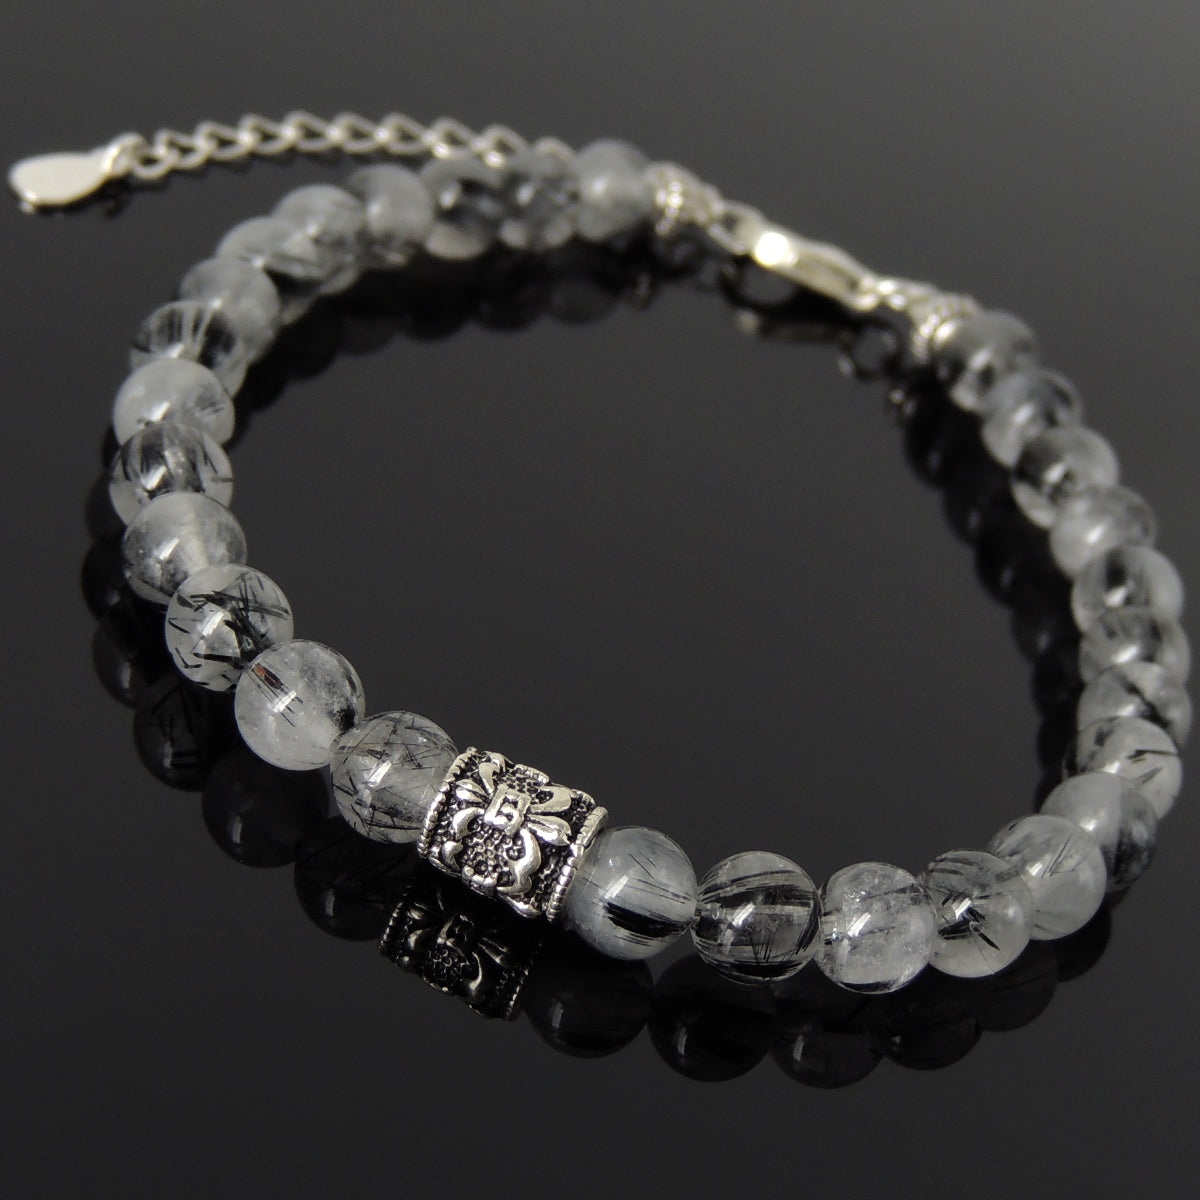 6mm Black Rutilated Quartz Healing Gemstone Bracelet with S925 Sterling Silver Fleur de Lis Barrel Bead & Clasp - Handmade by Gem & Silver BR1295